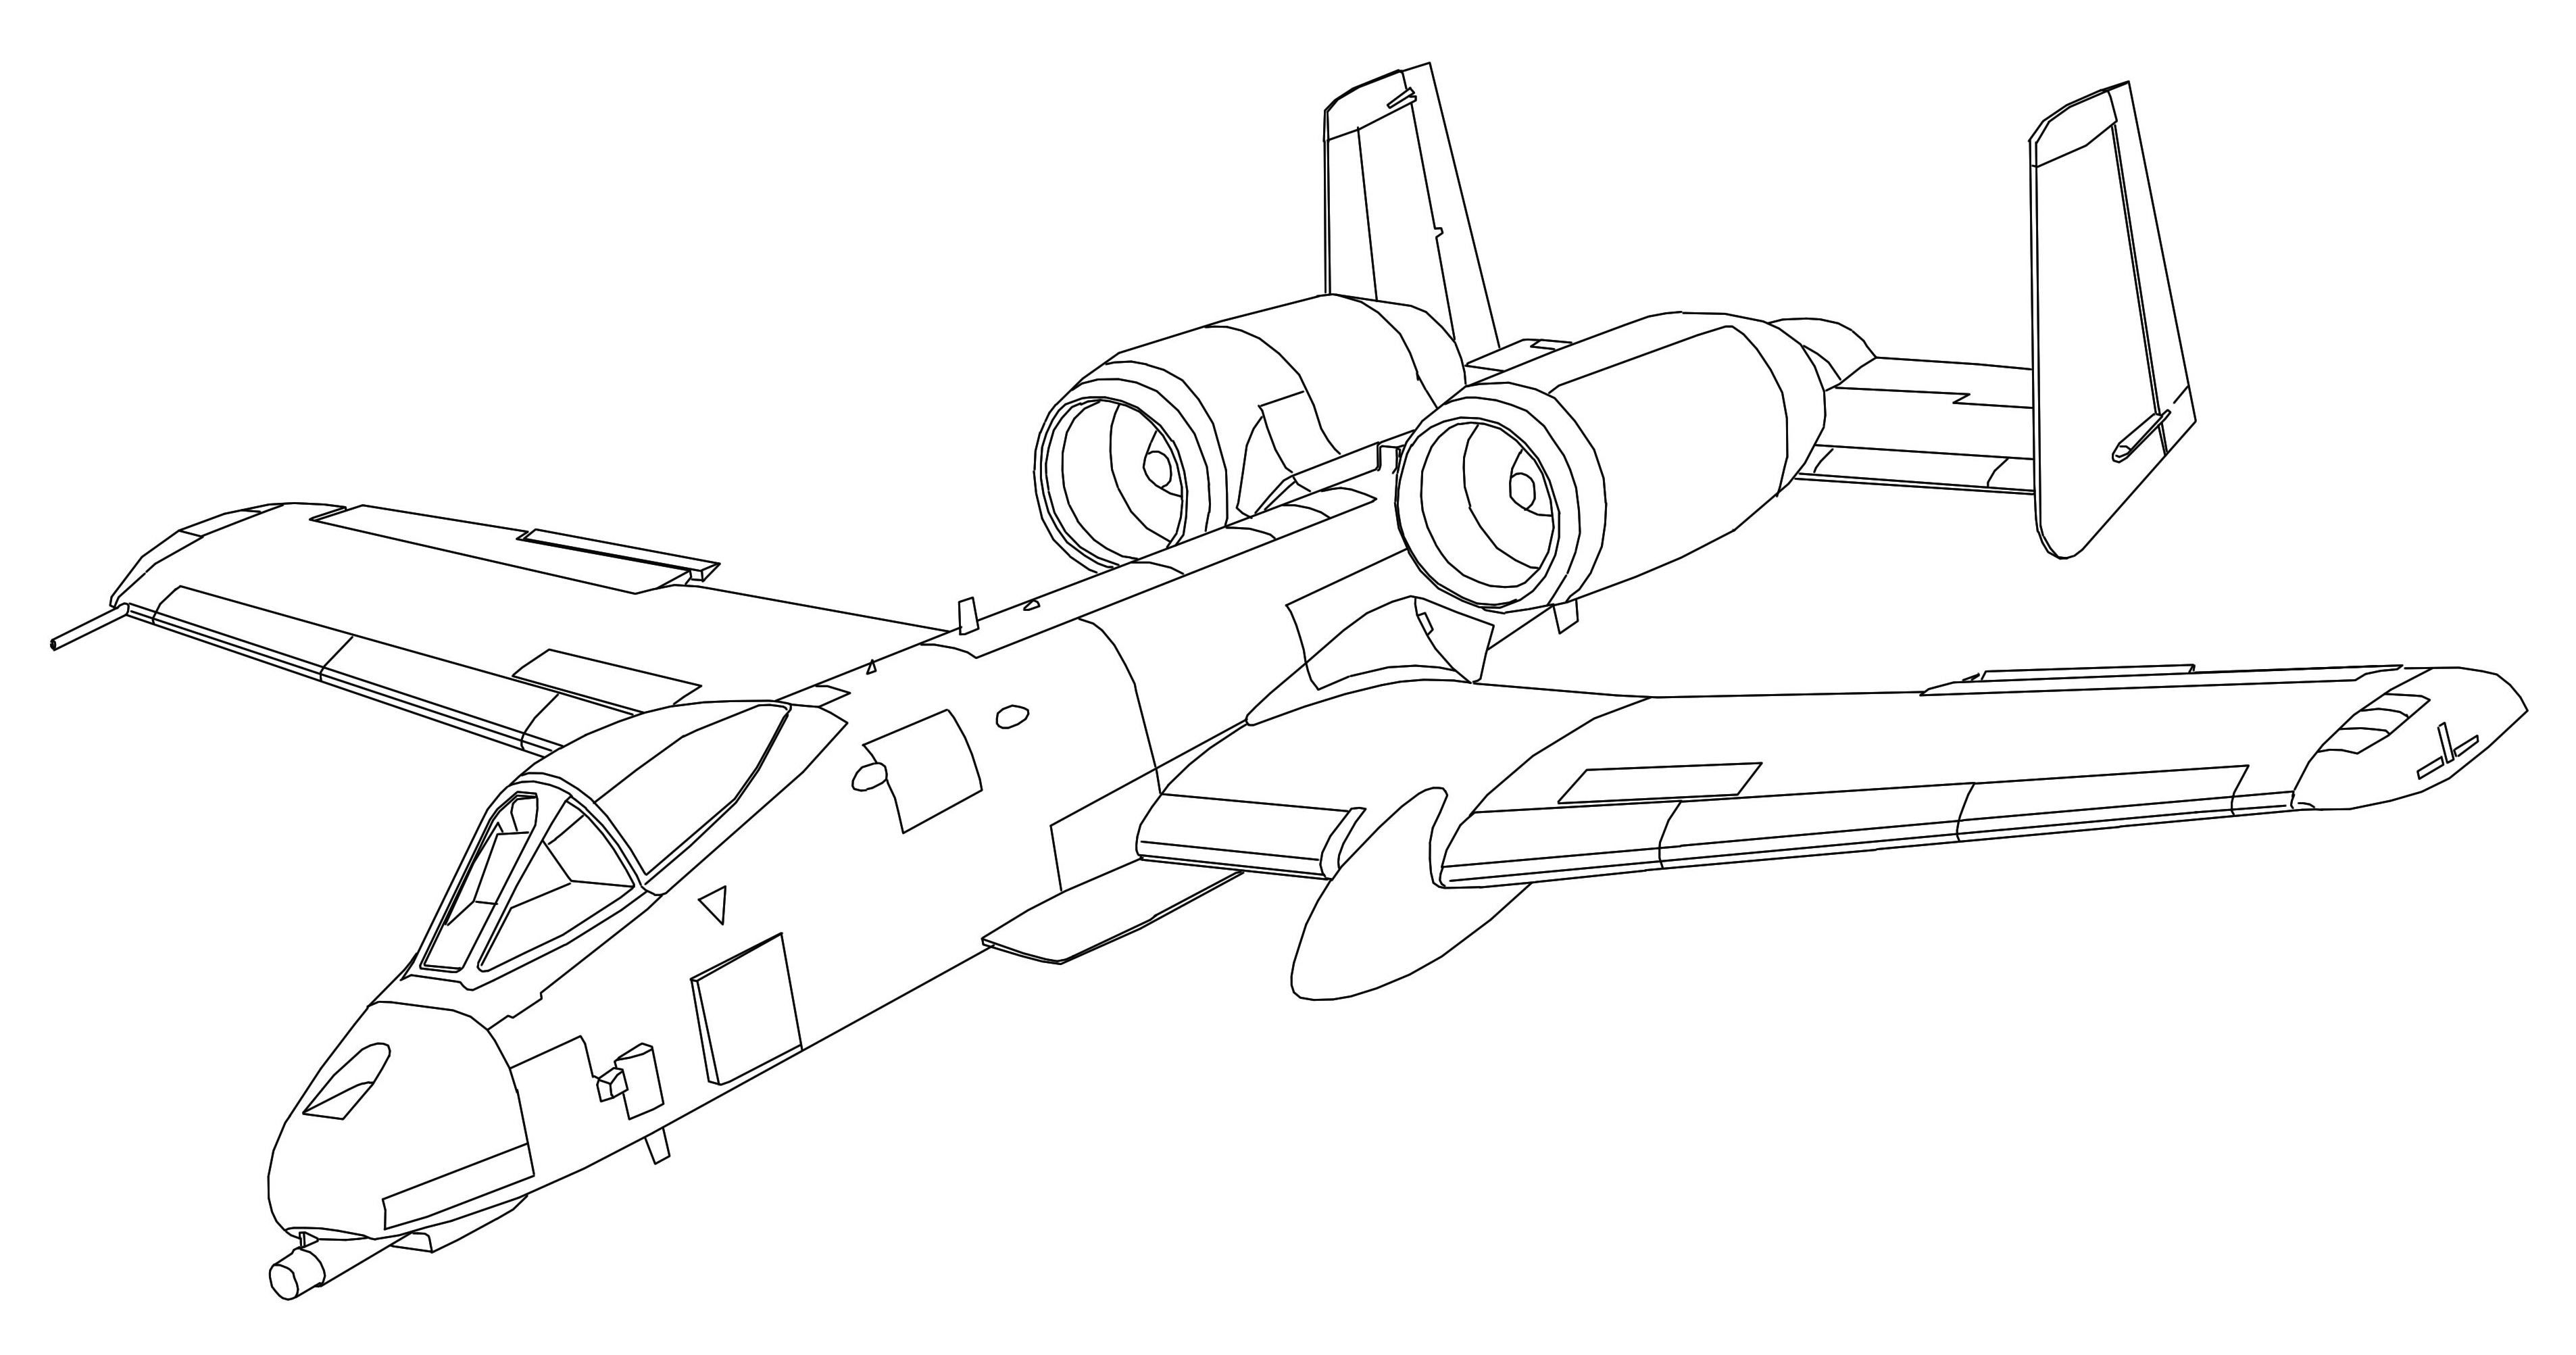 More Line Drawings For Everyday Andrewkellett94